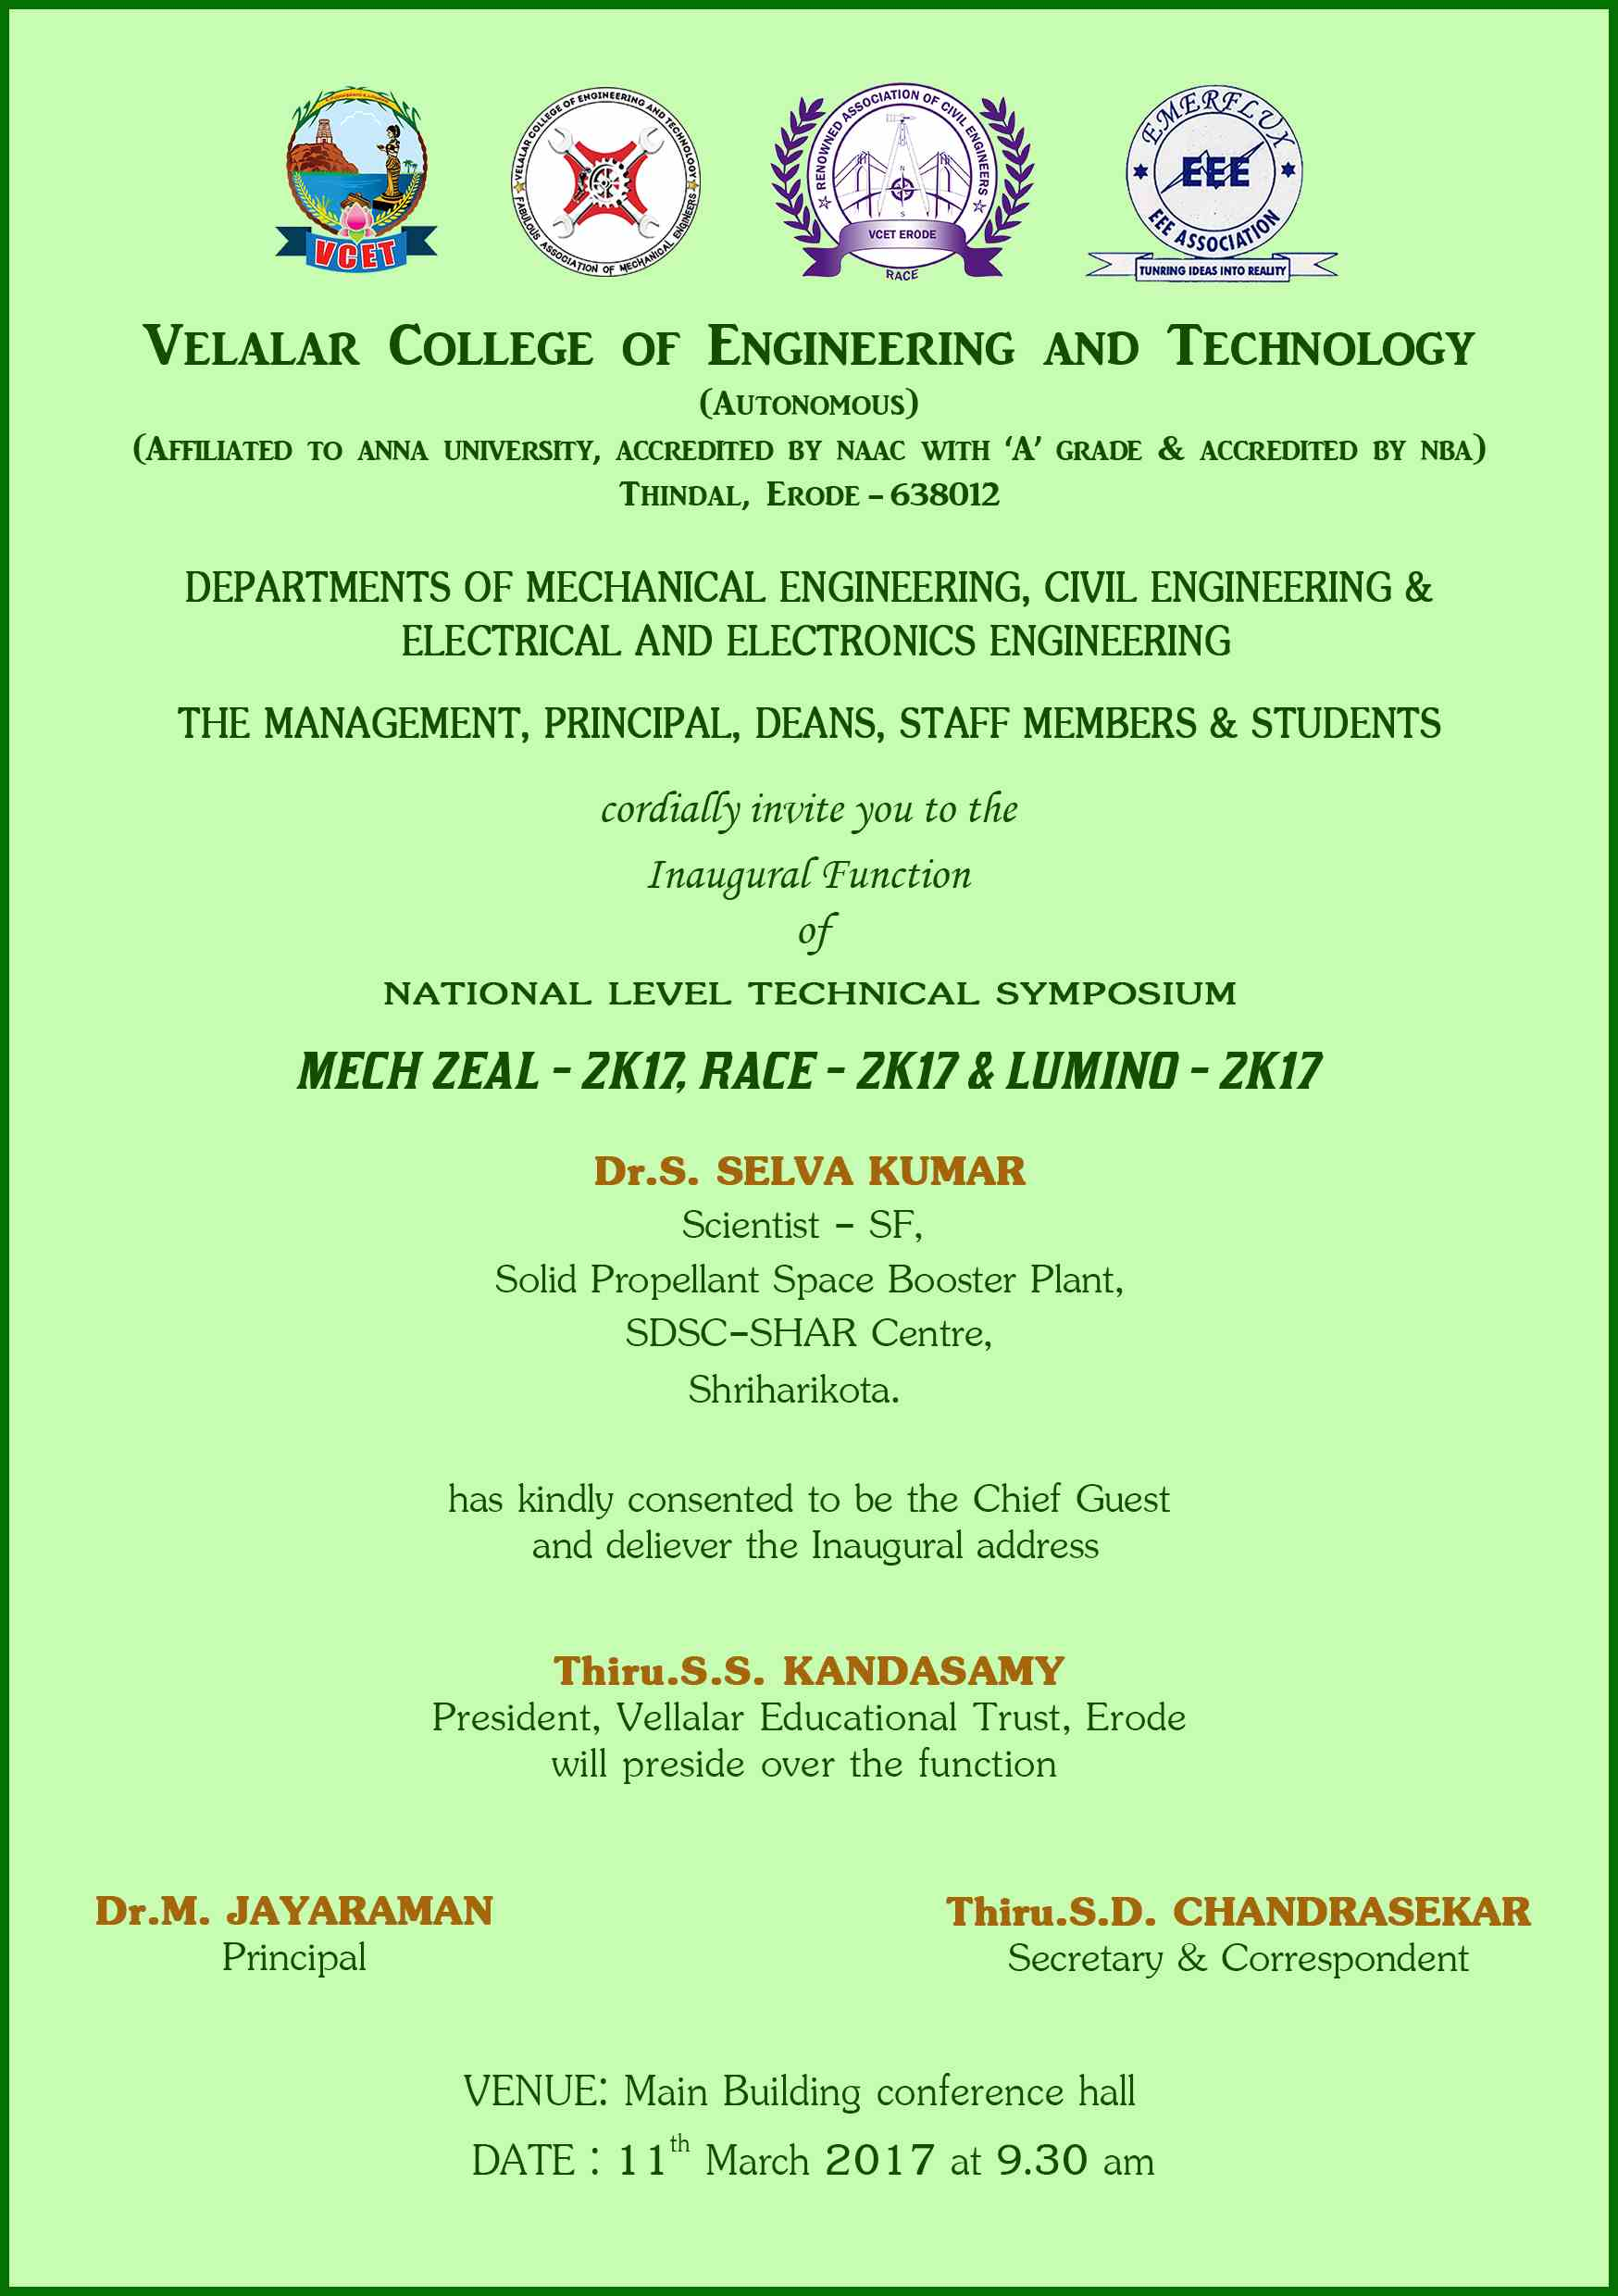 Velalar College Engineering and Technology, Erode